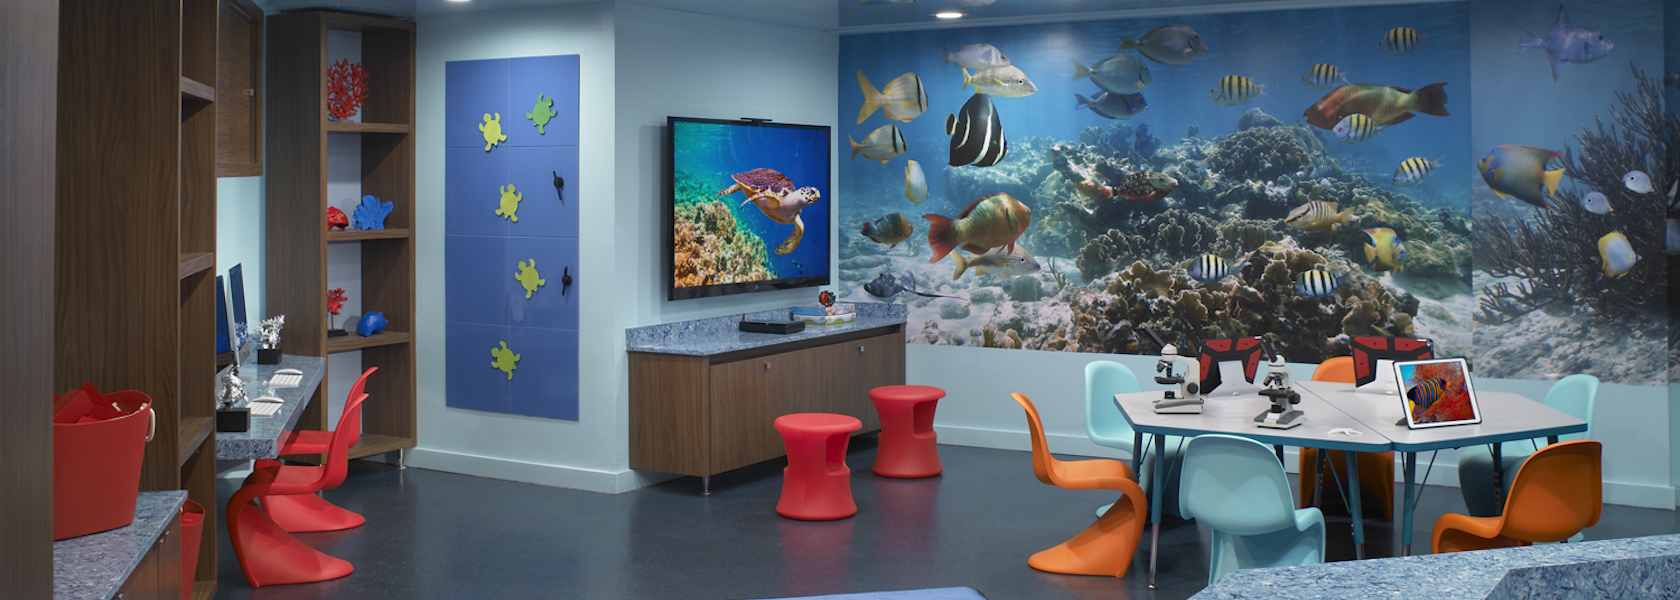 Acquamarine Children's Room at Acqualina with marine and science kids items.